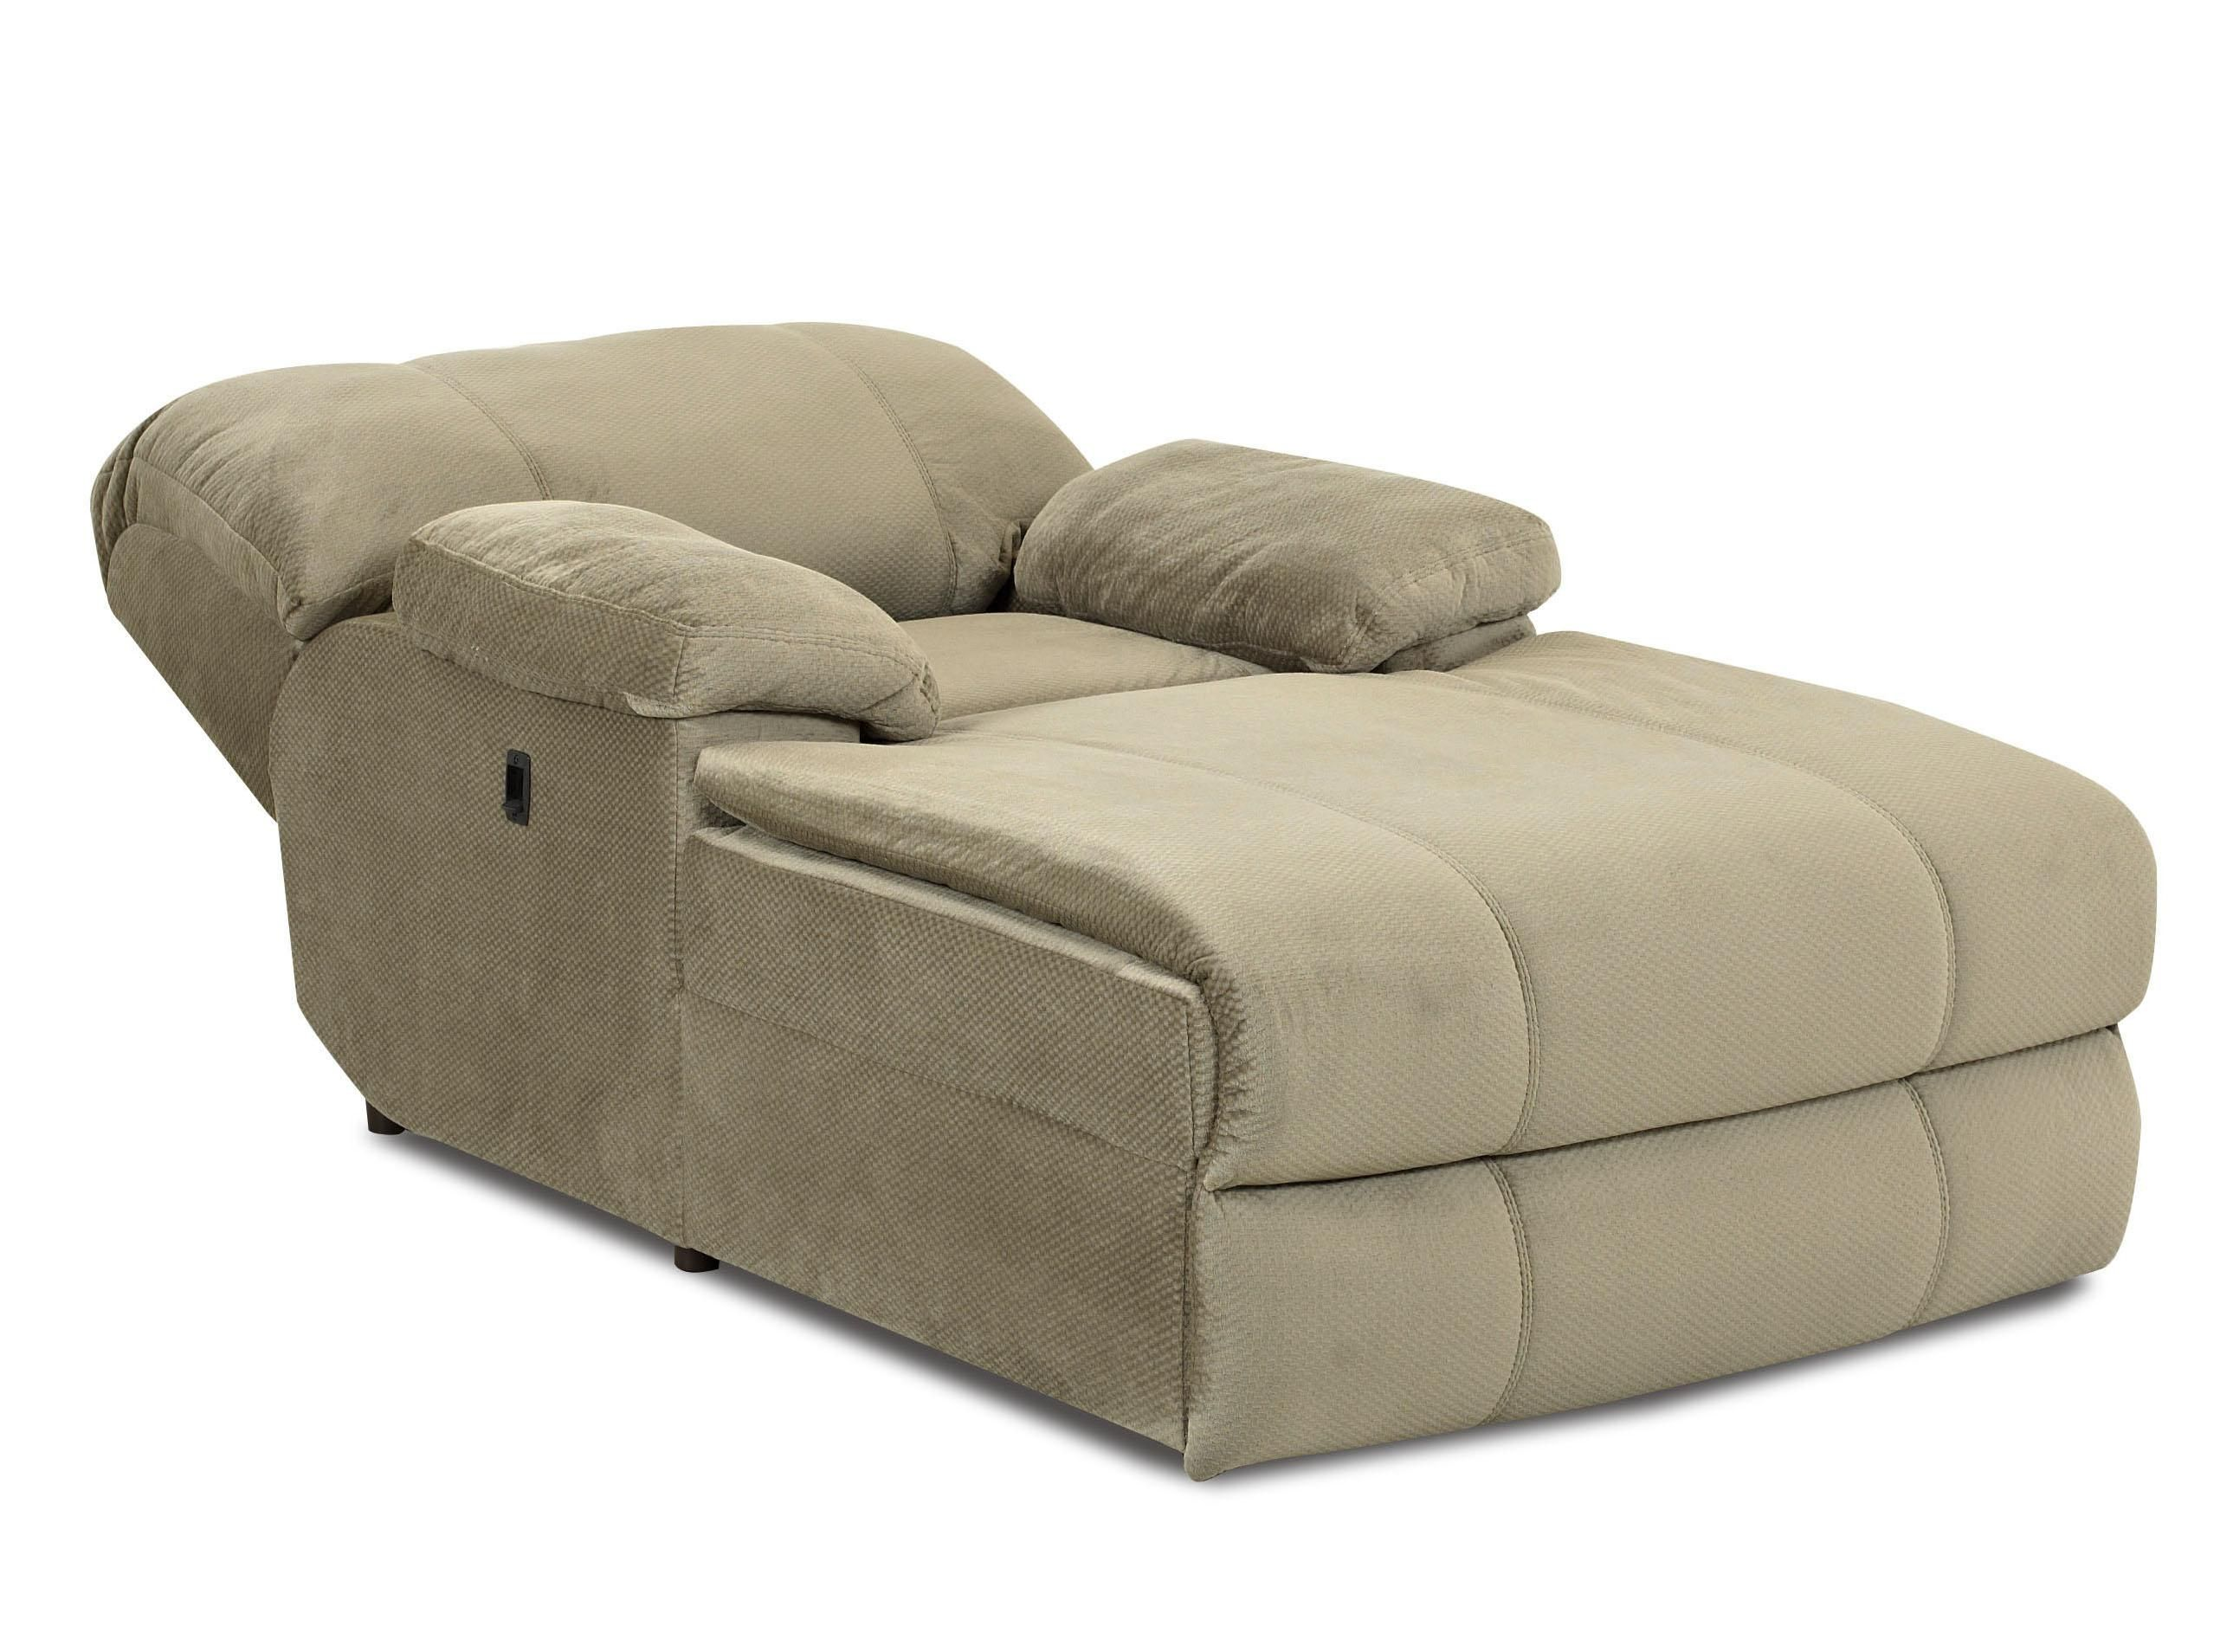 Reclining Lounge Chair Indoor Oversized Chaise Lounge Kensington Reclining